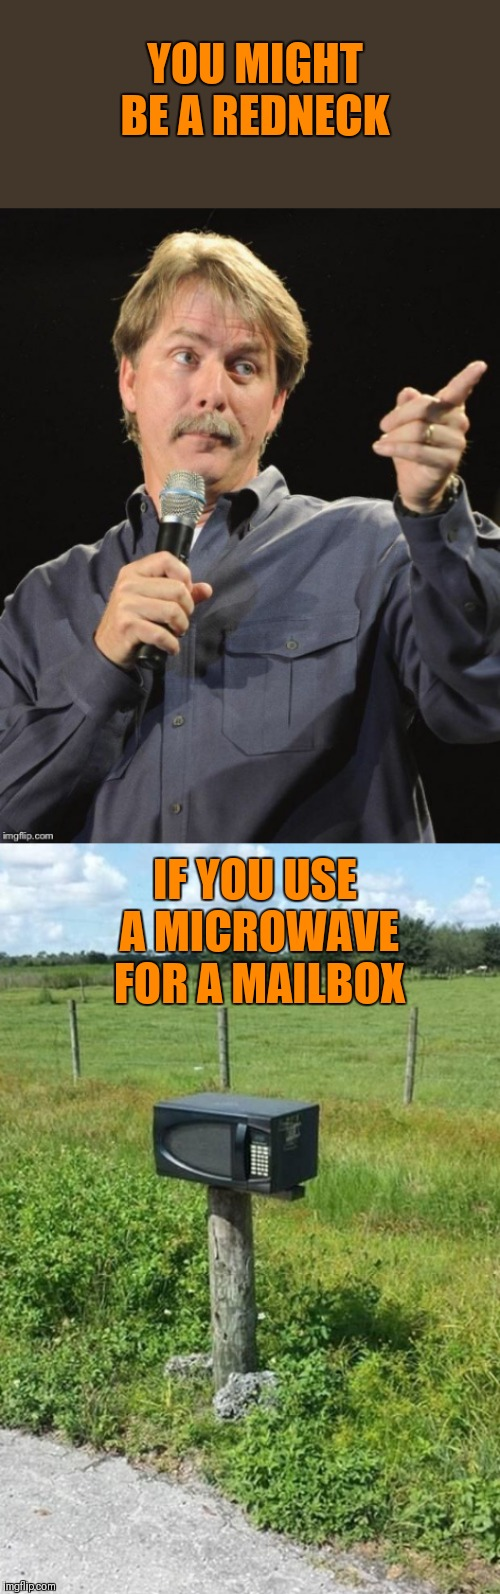 It's true | YOU MIGHT BE A REDNECK IF YOU USE A MICROWAVE FOR A MAILBOX | image tagged in jeff foxworthy you might be a redneck if,memes,microwave,mailbox,funny,44colt | made w/ Imgflip meme maker